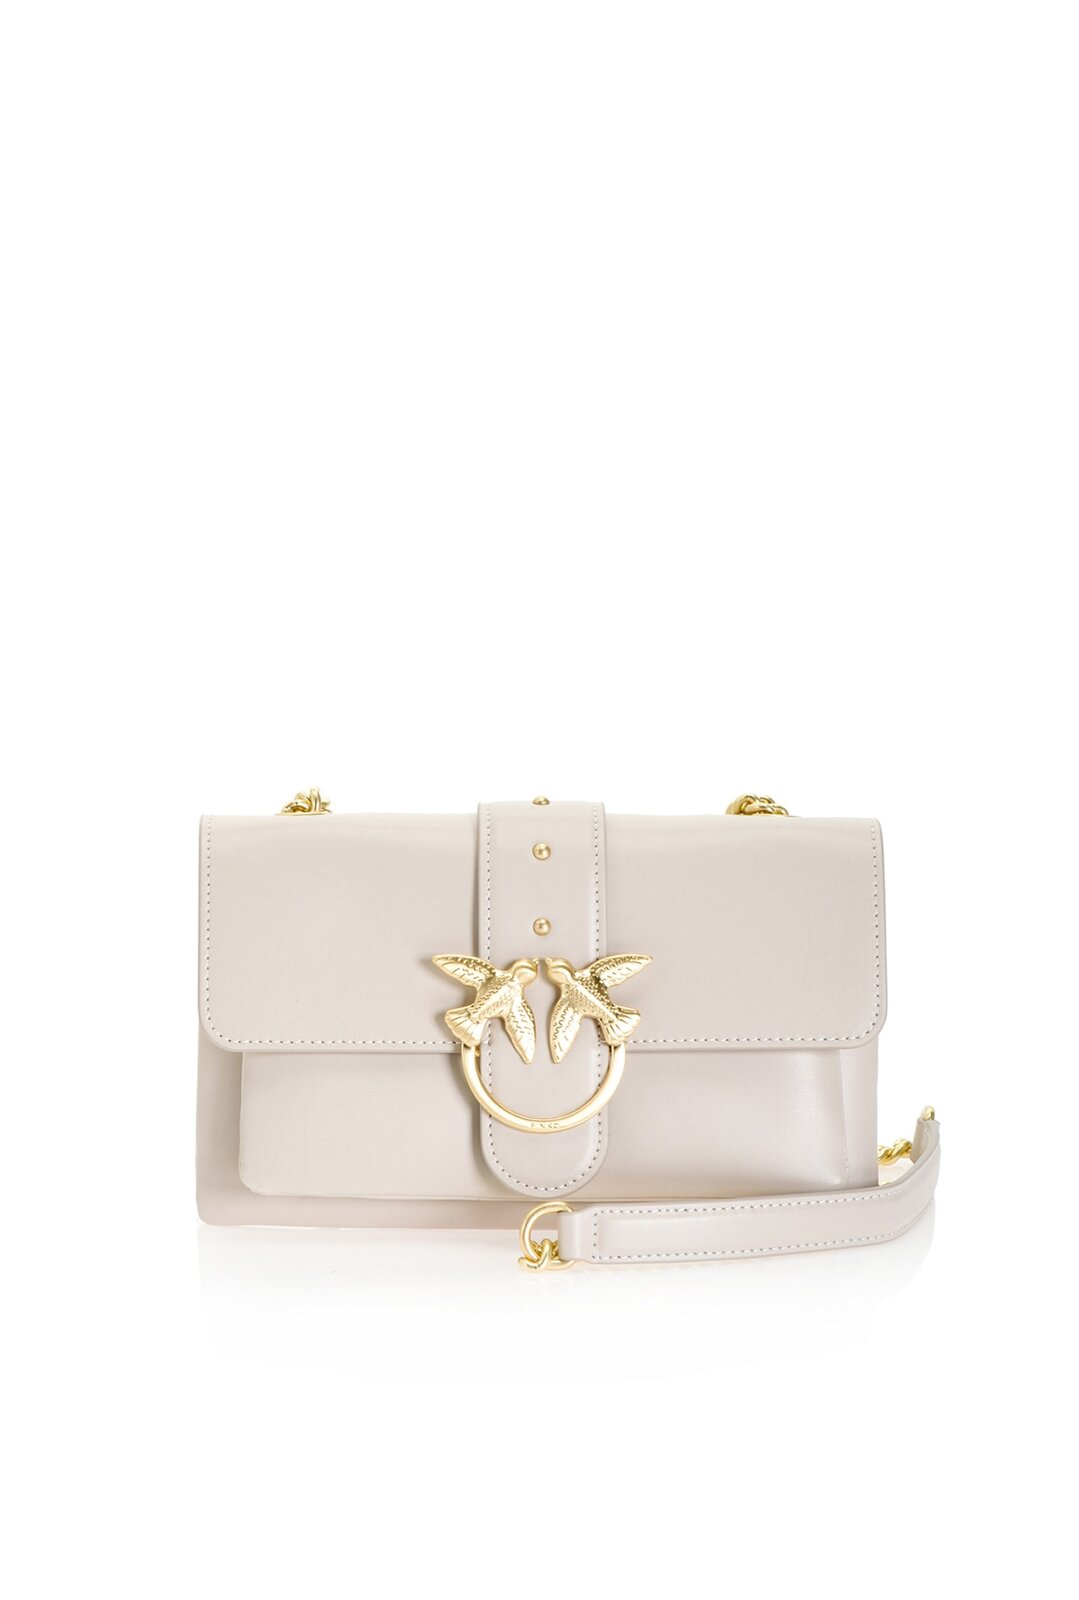 Mini Love Bag Soft Simply In Pelle - Pinko